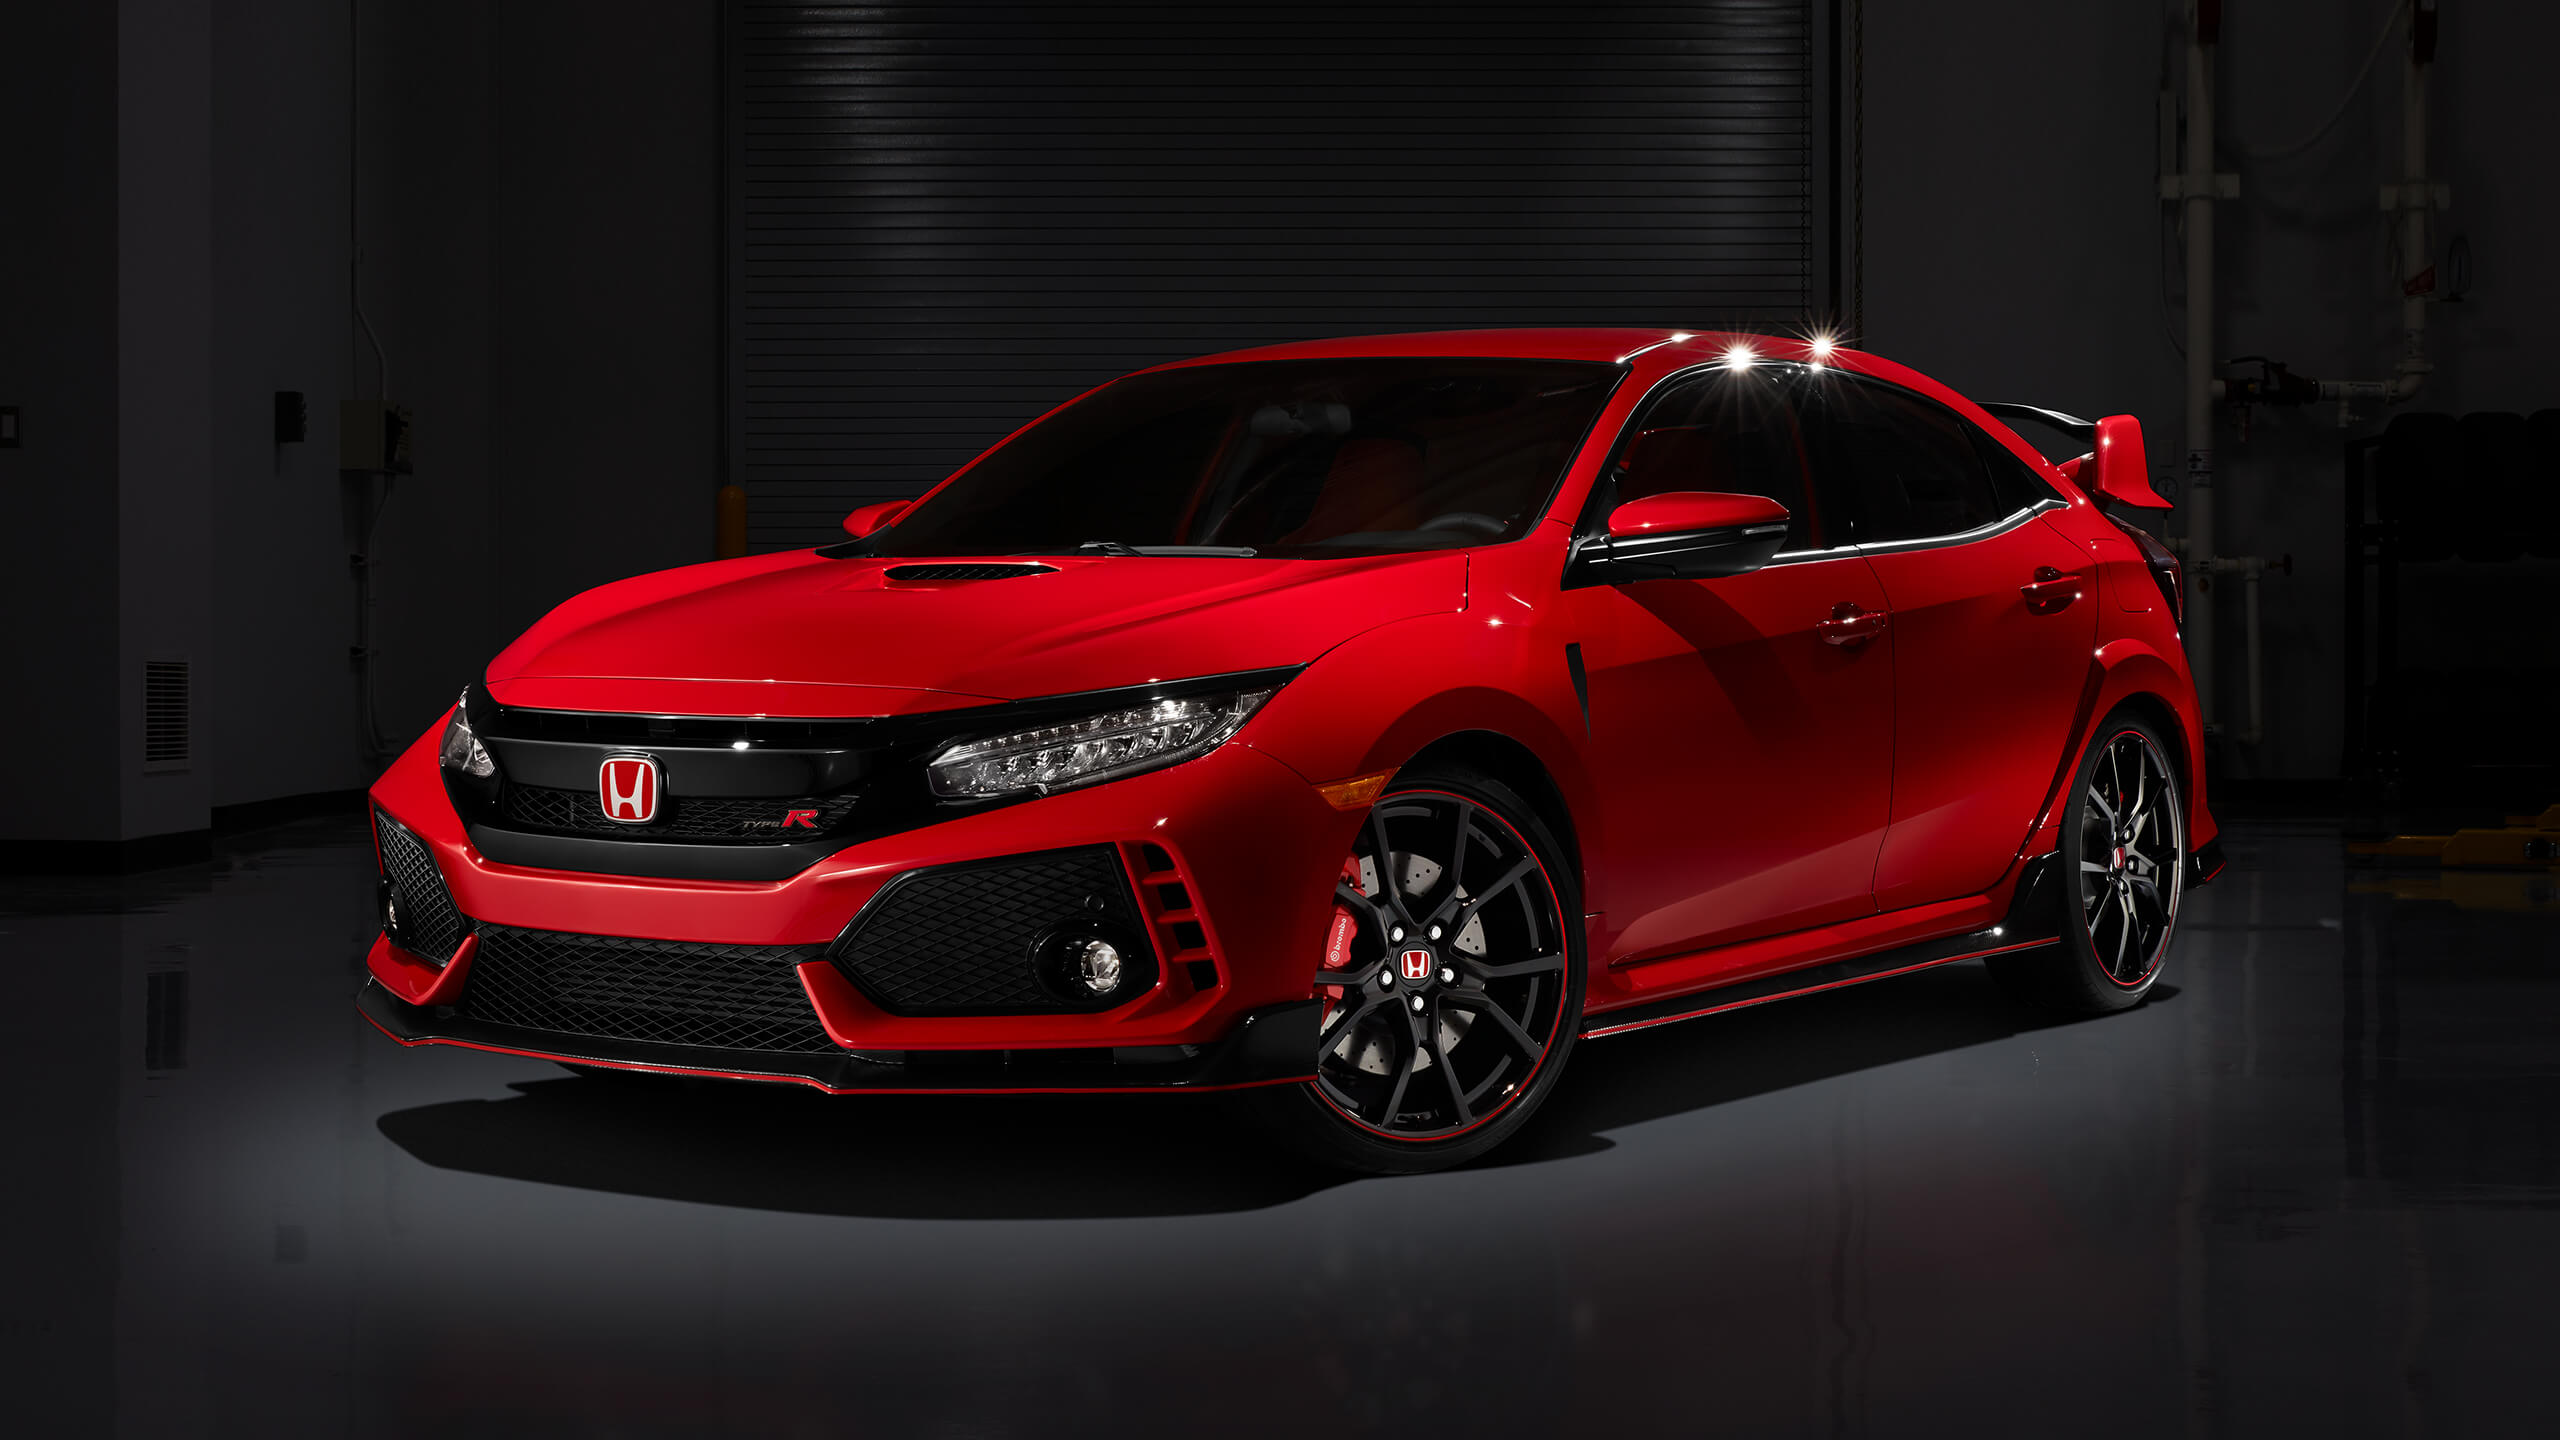 16 Honda Civic Type R Hd Wallpapers Background Images Wallpaper